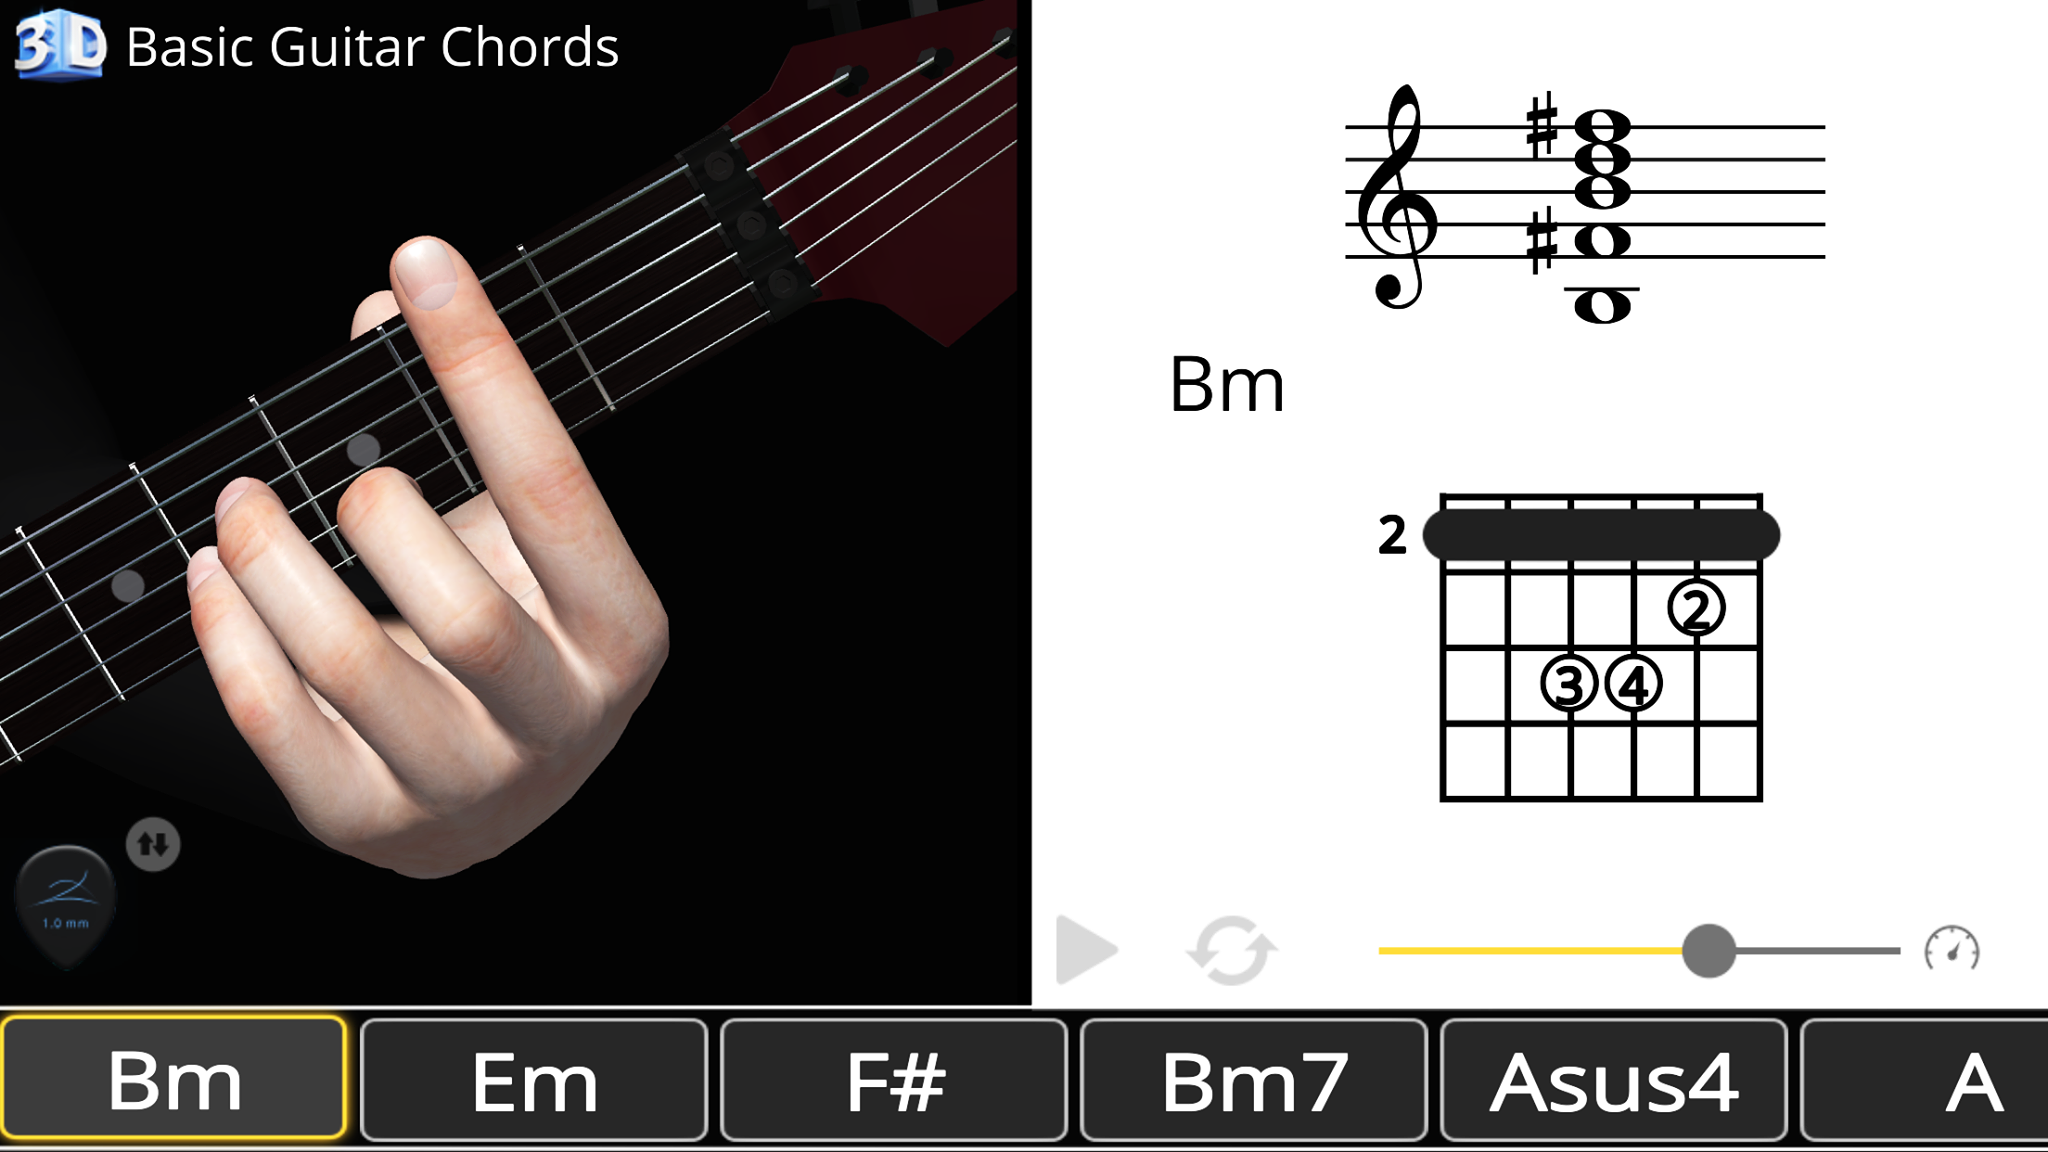 Basic Guitar Chords 3D Barre Chords